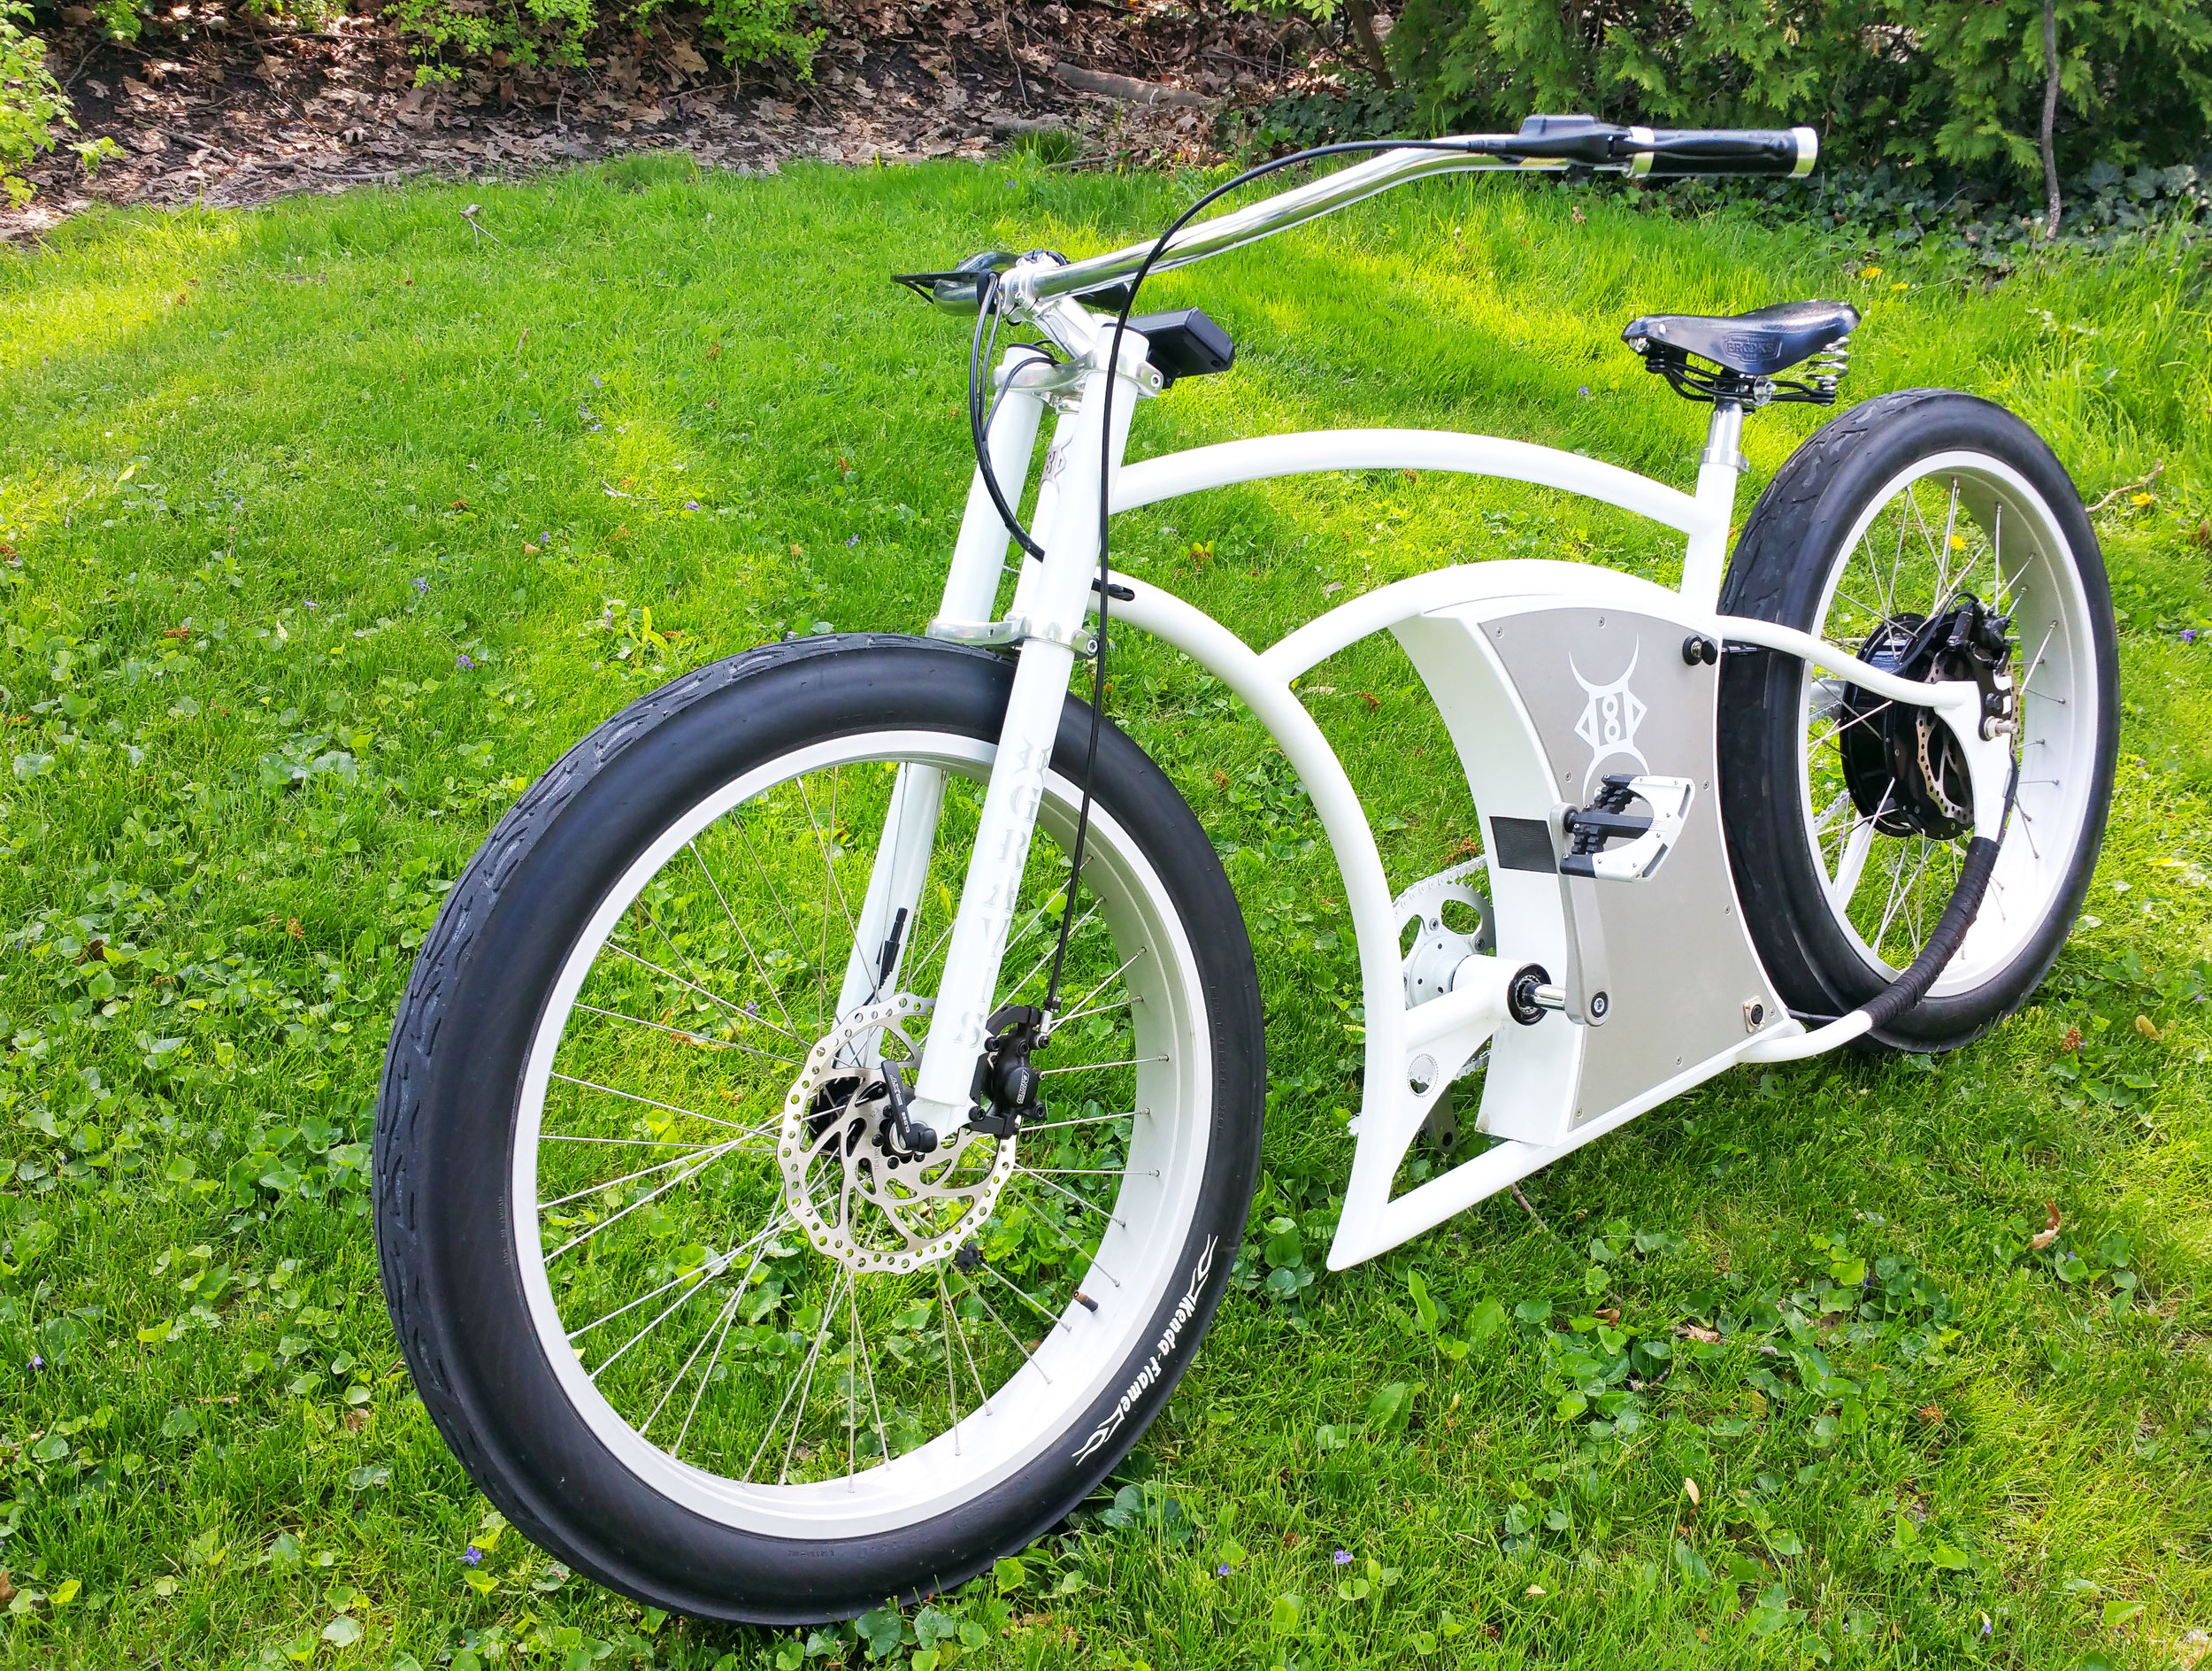 Competitive Pricing - Our bikes start at $5800... Not bad for a high quality machine that doesn't need gas or insurance. Get in touch and let us tell you why this is the best mode of transportation for short distance commutes.